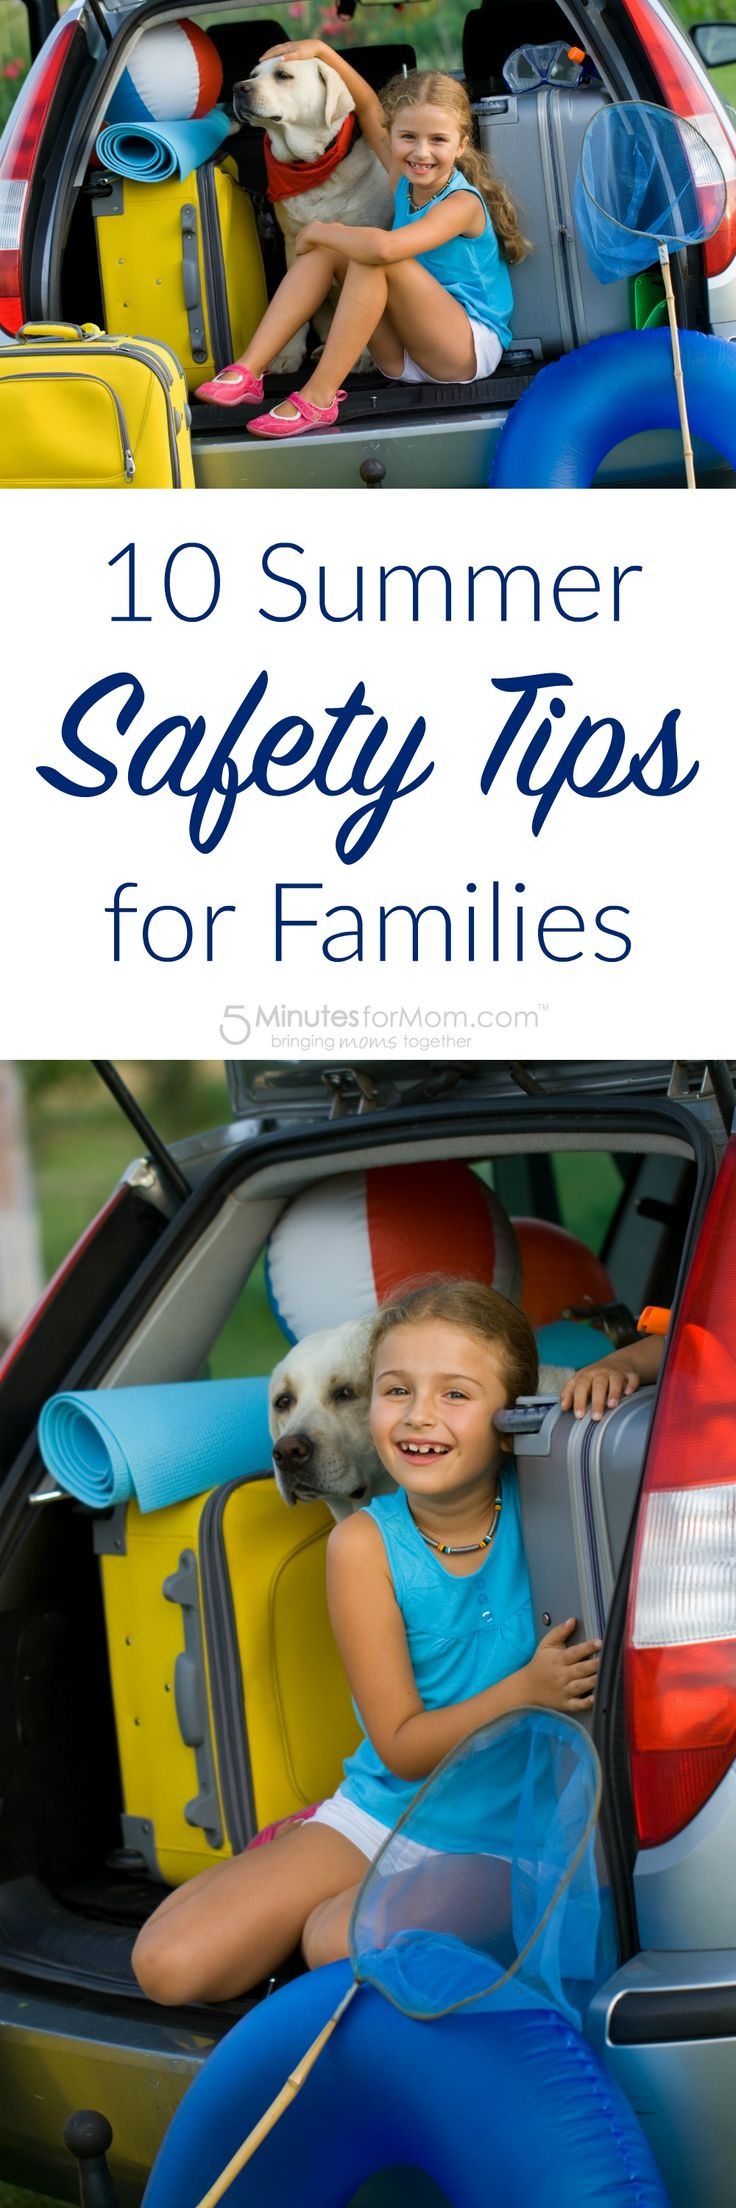 10 Summer Safety Tips for Families - You to have the best summer ever, so follow these 10 summer safety tips to help keep you, your family, your home and your belongings safe and secure. Sponsored.